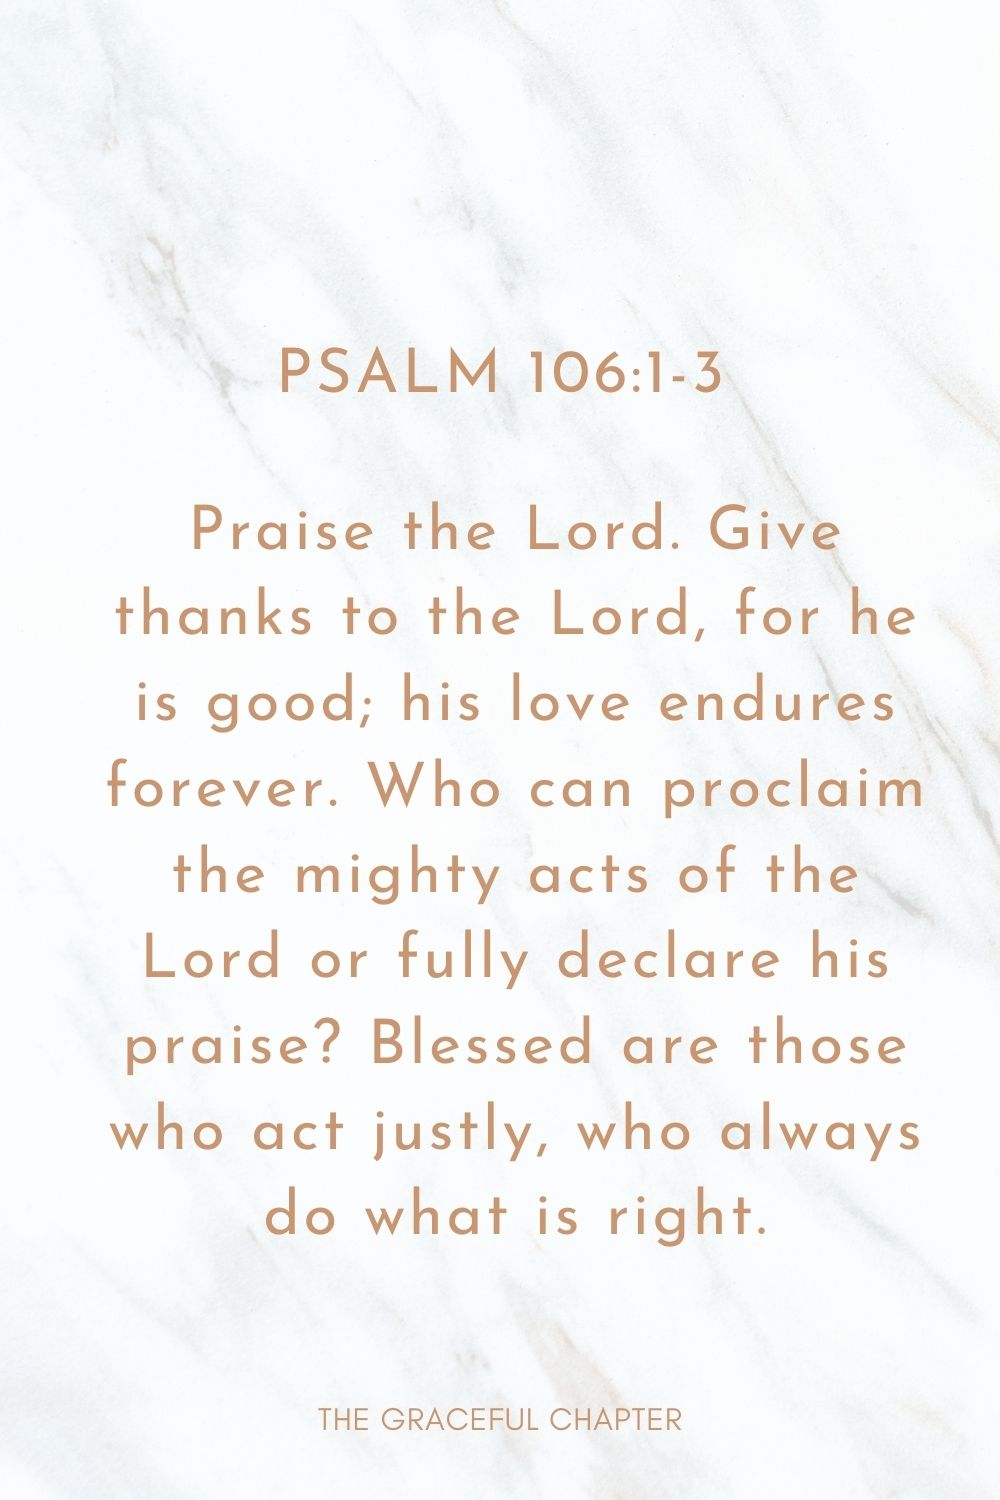 Praise the Lord. Give thanks to the Lord, for he is good; his love endures forever. Who can proclaim the mighty acts of the Lord or fully declare his praise? Blessed are those who act justly, who always do what is right. Psalm 106:1-3